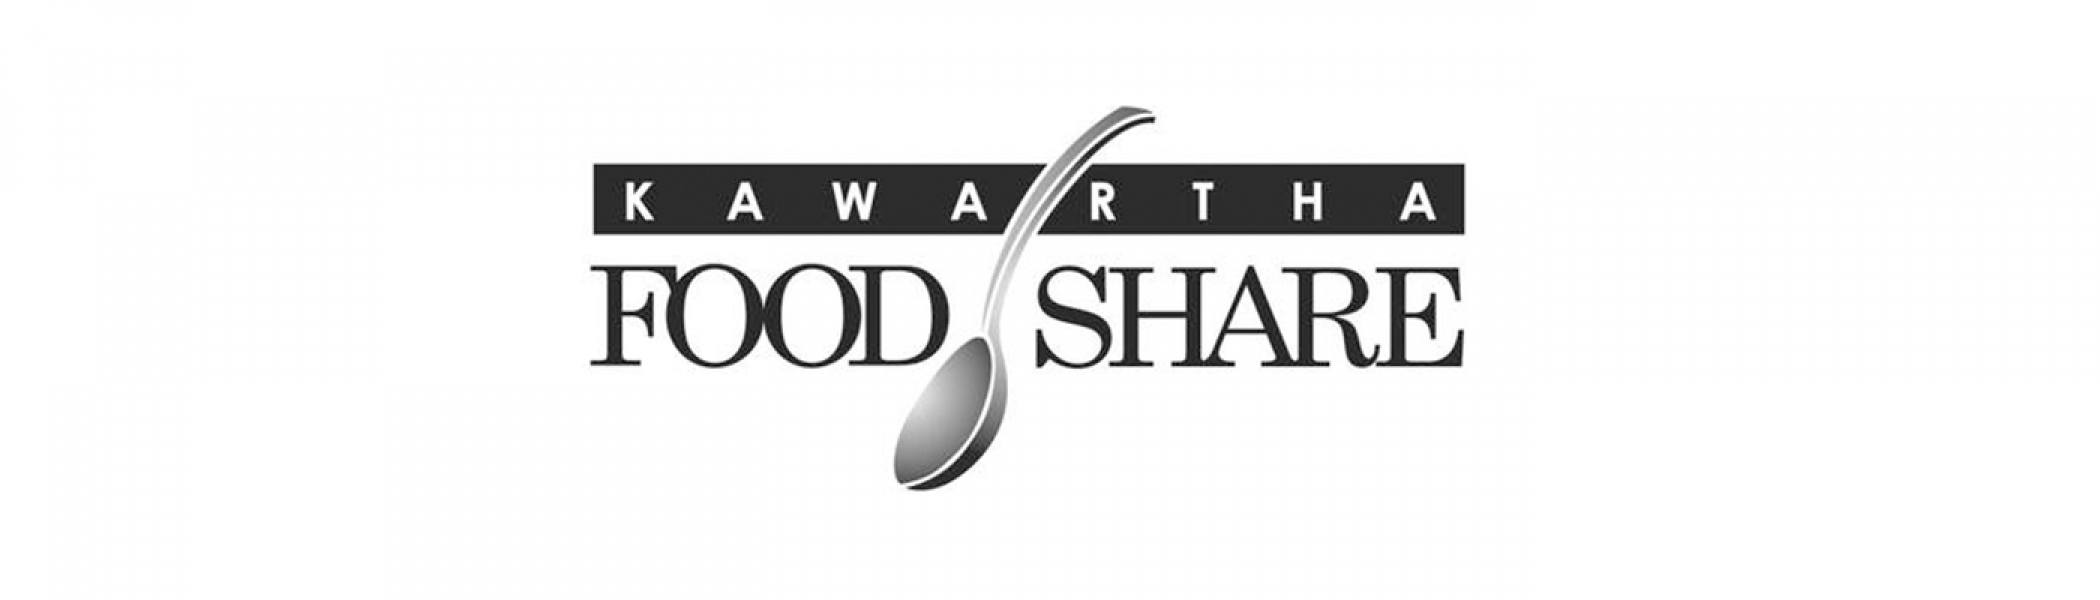 Kawartha Food Share logo (just text) with a spoon in between of Food and Share